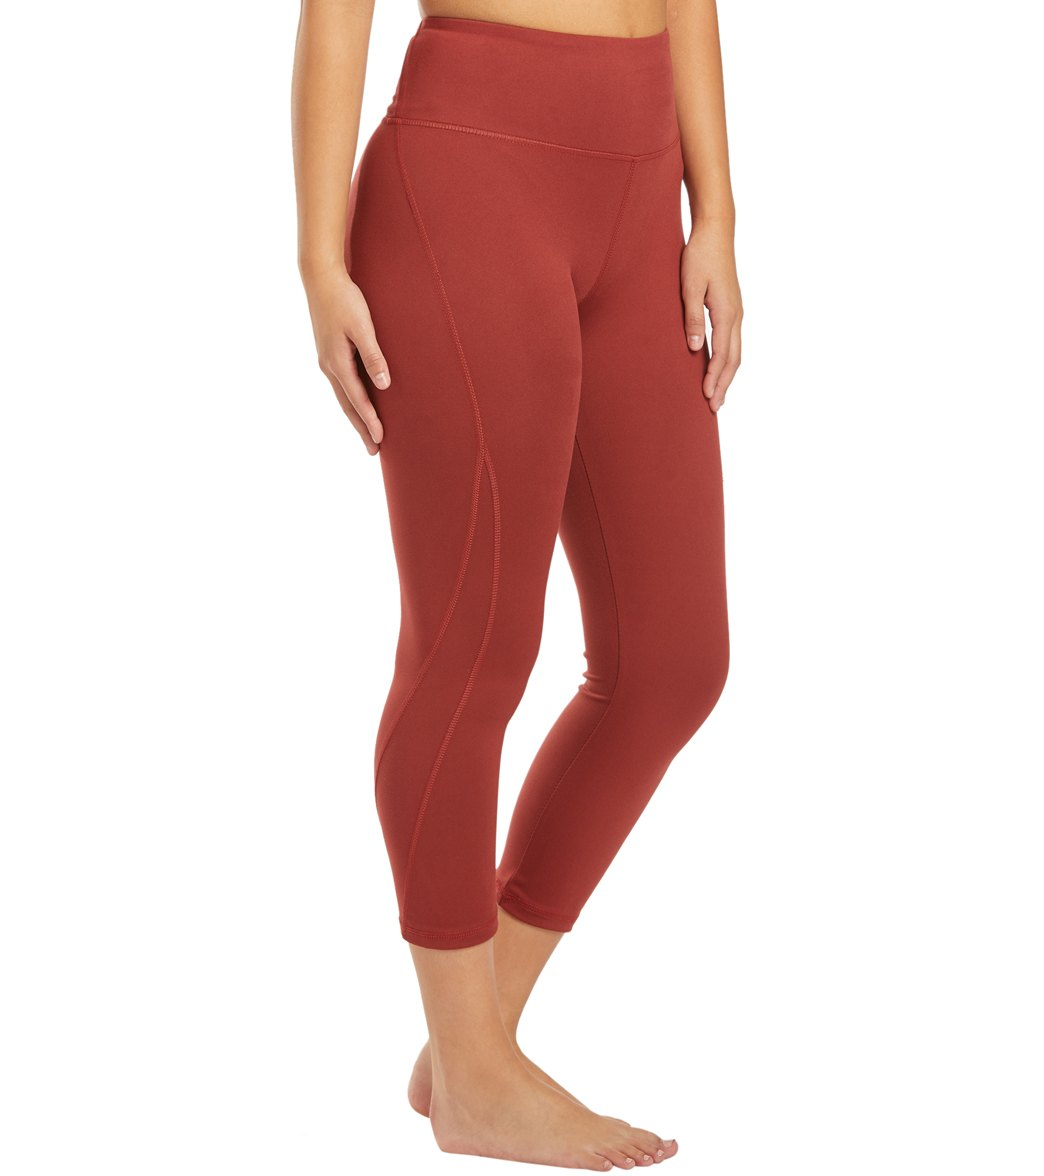 Balance Collection Briar High Waisted Yoga Capri Pants - Burnt Russet Cotton